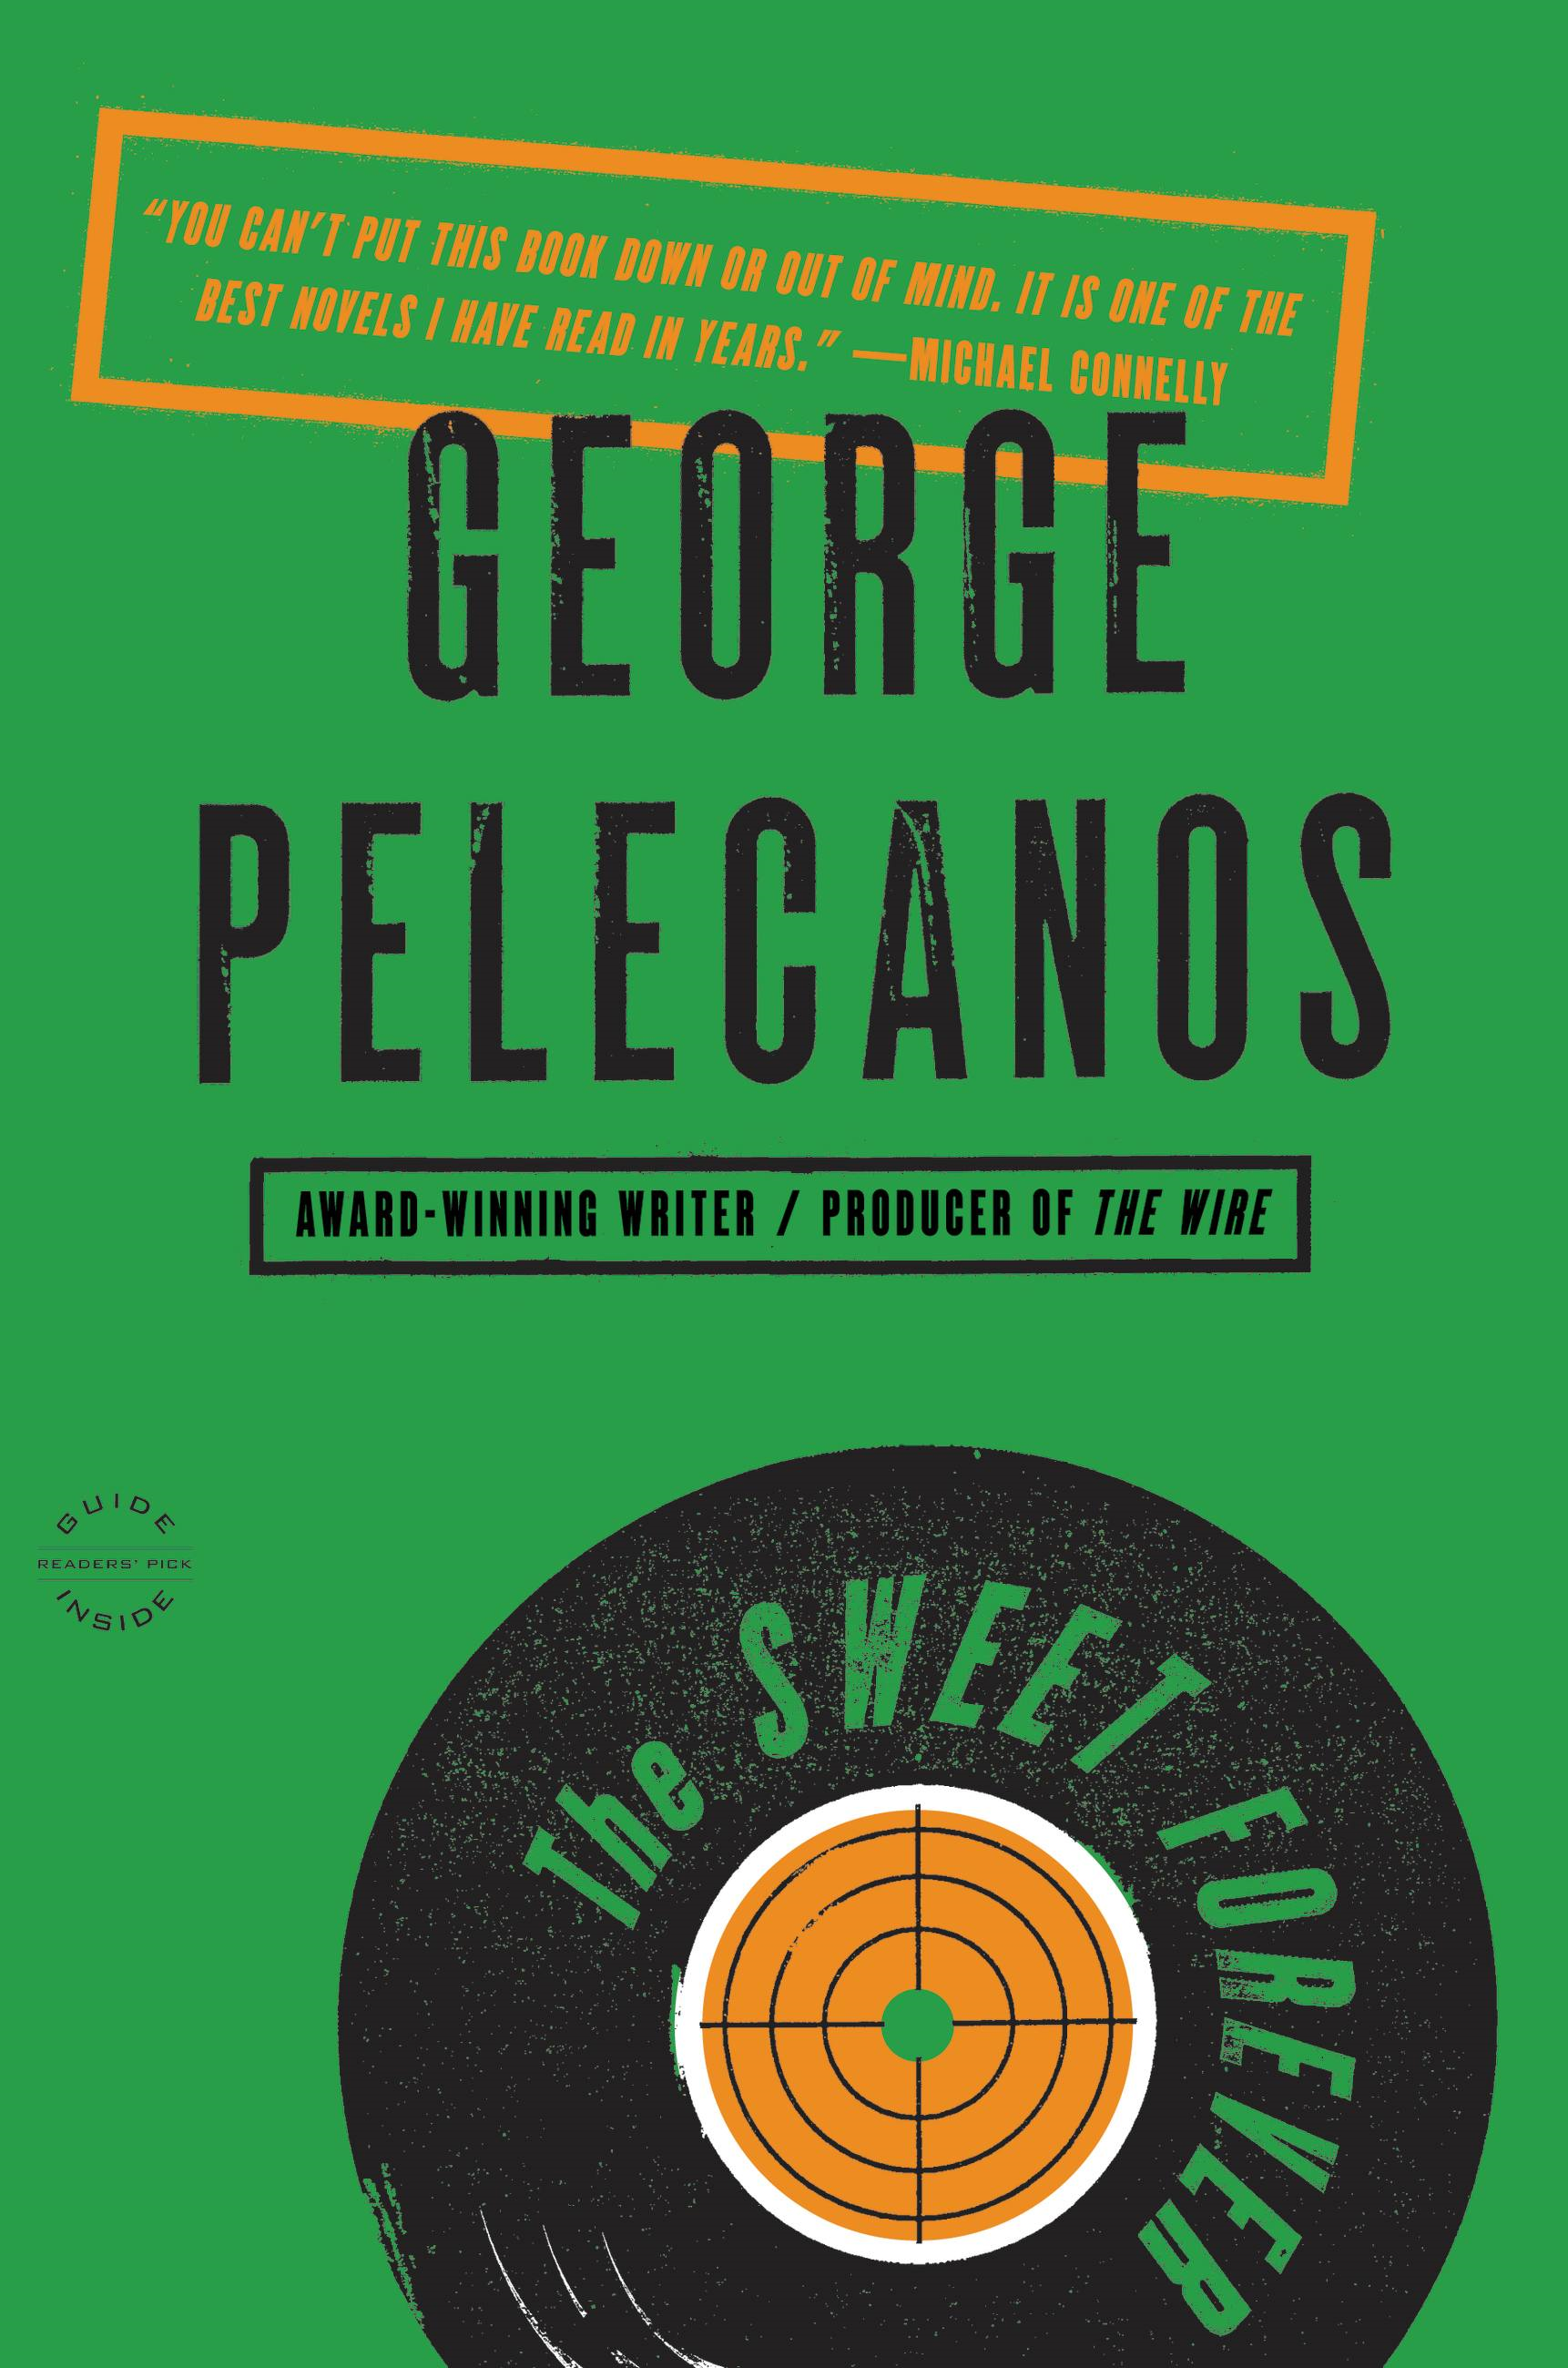 The Sweet Forever By: George Pelecanos